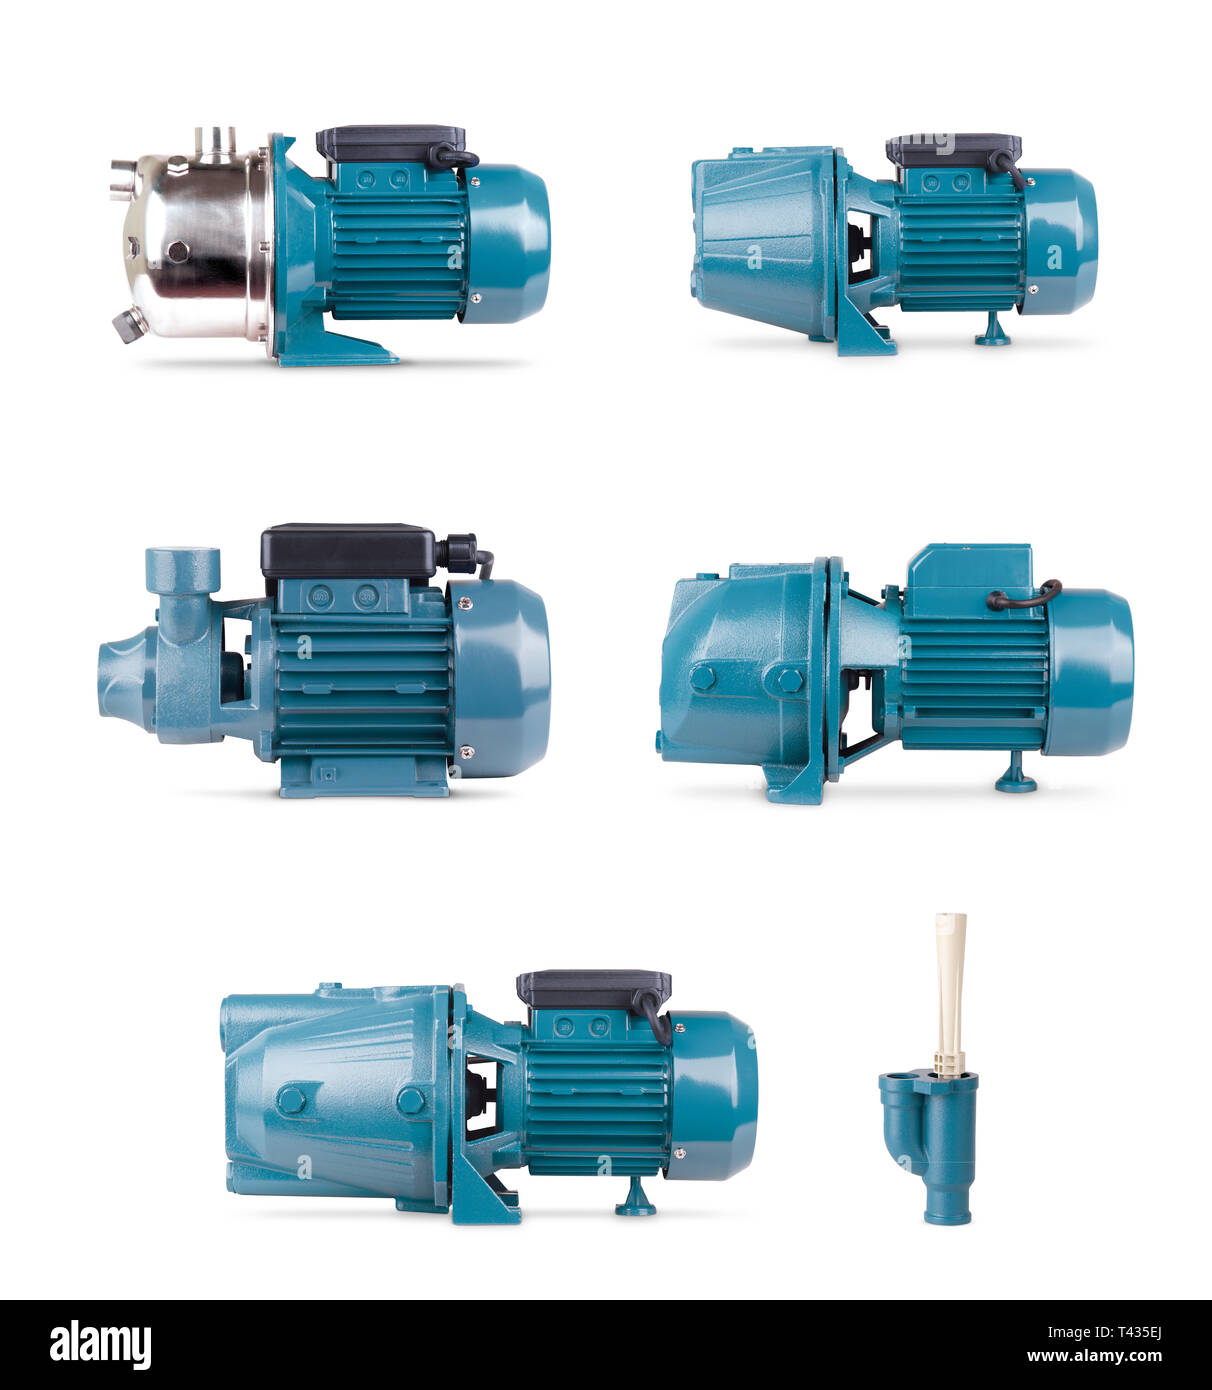 Set of electric motors, isolated white background. Iron pump casing, pressure sensor. Blue color station. Application in private homes, country house - Stock Image